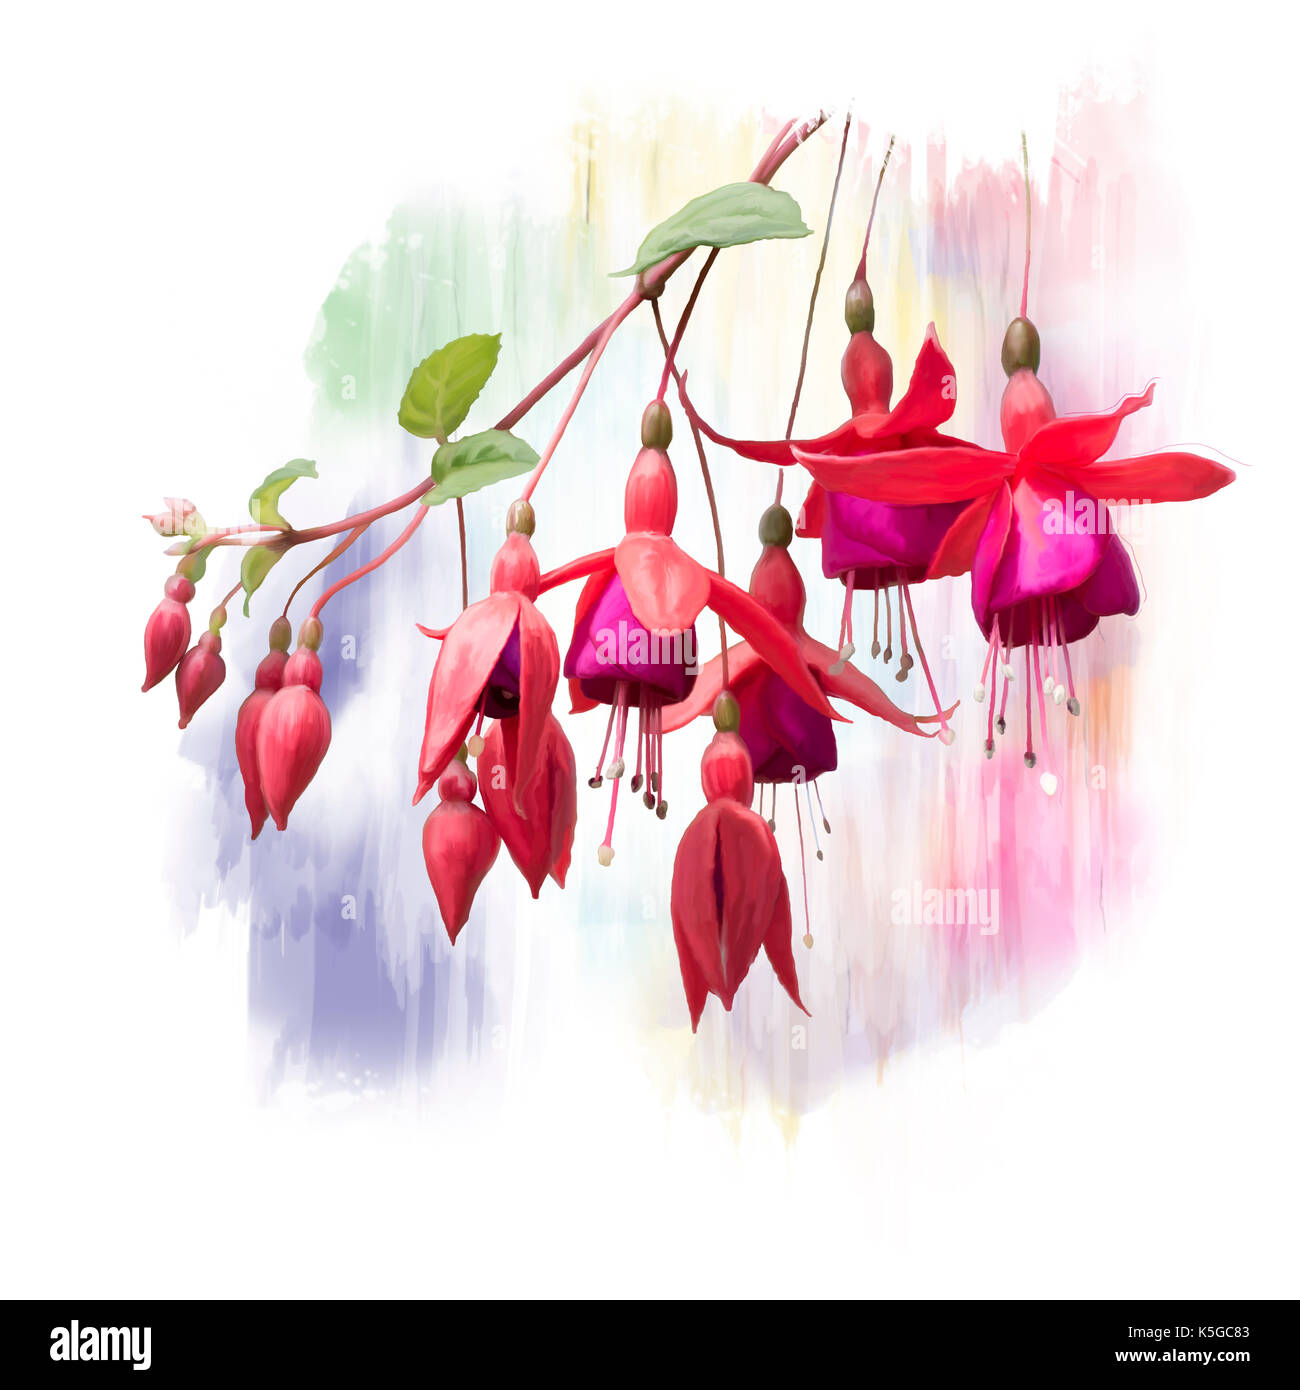 Red Fuchsia Flowers Stock Photos & Red Fuchsia Flowers Stock Images ...